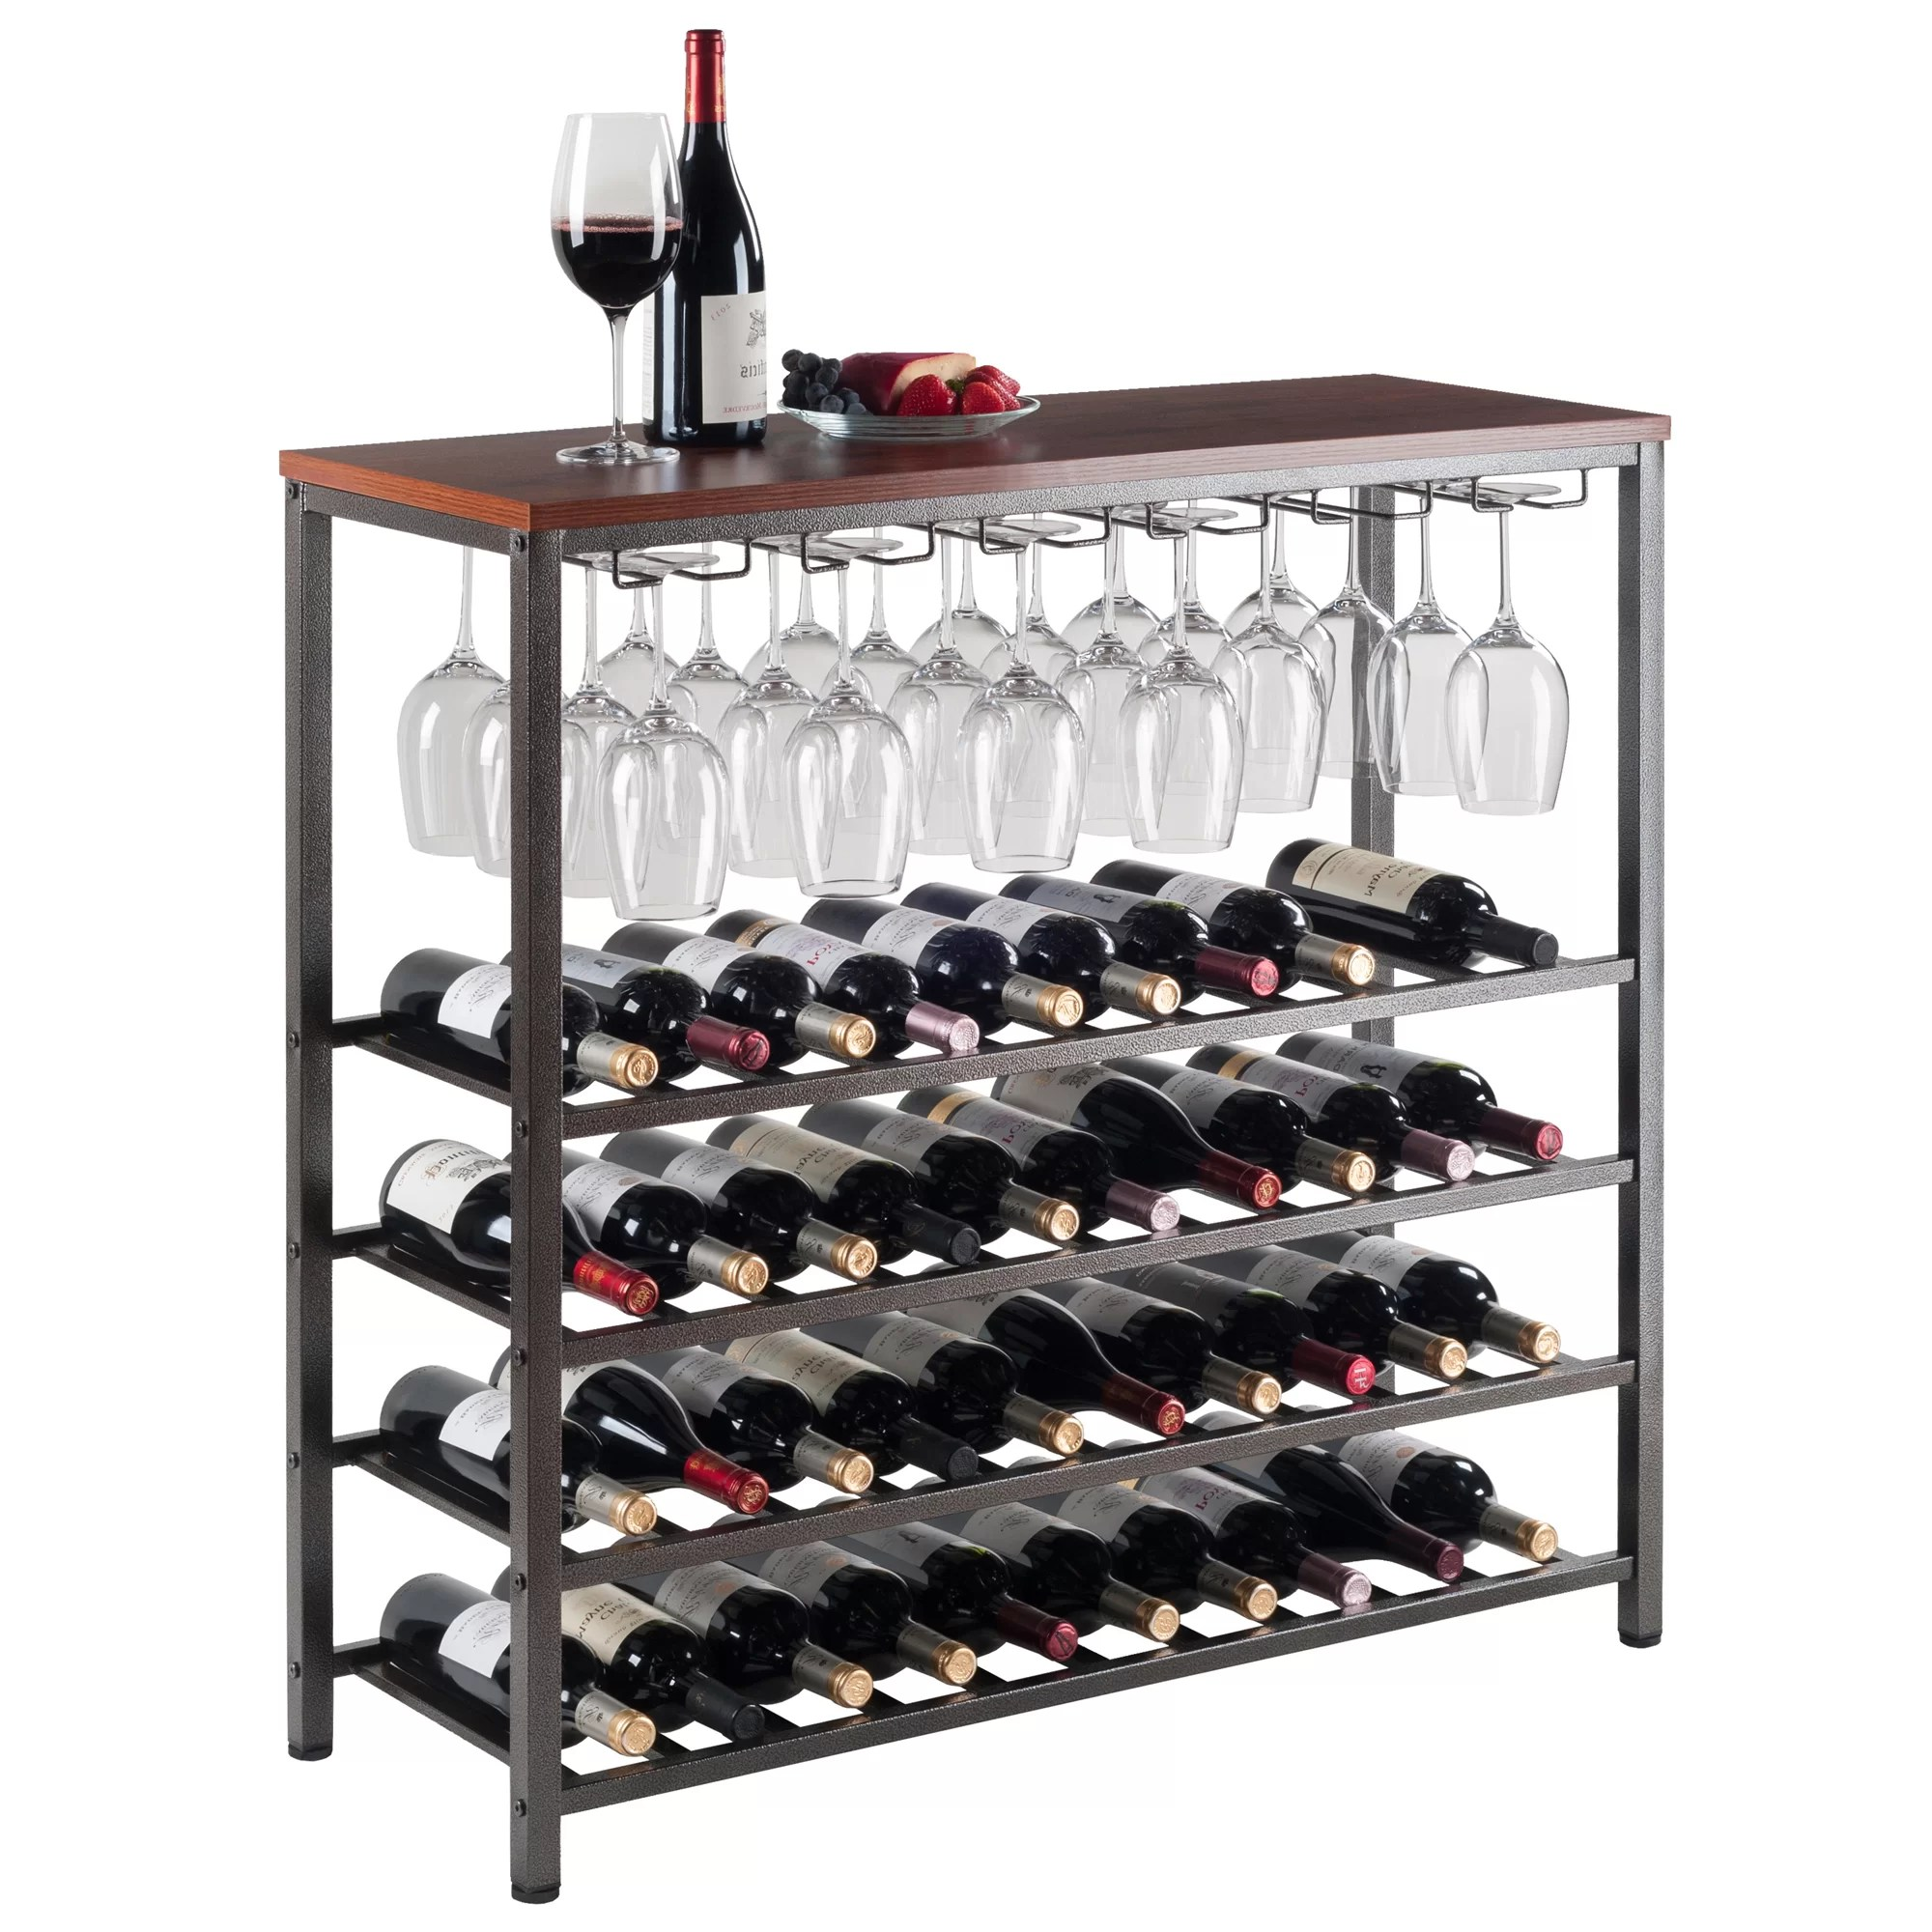 In Floor Wine Storage Darby Home Co Gillam 40 Bottle Floor Wine Rack And Reviews